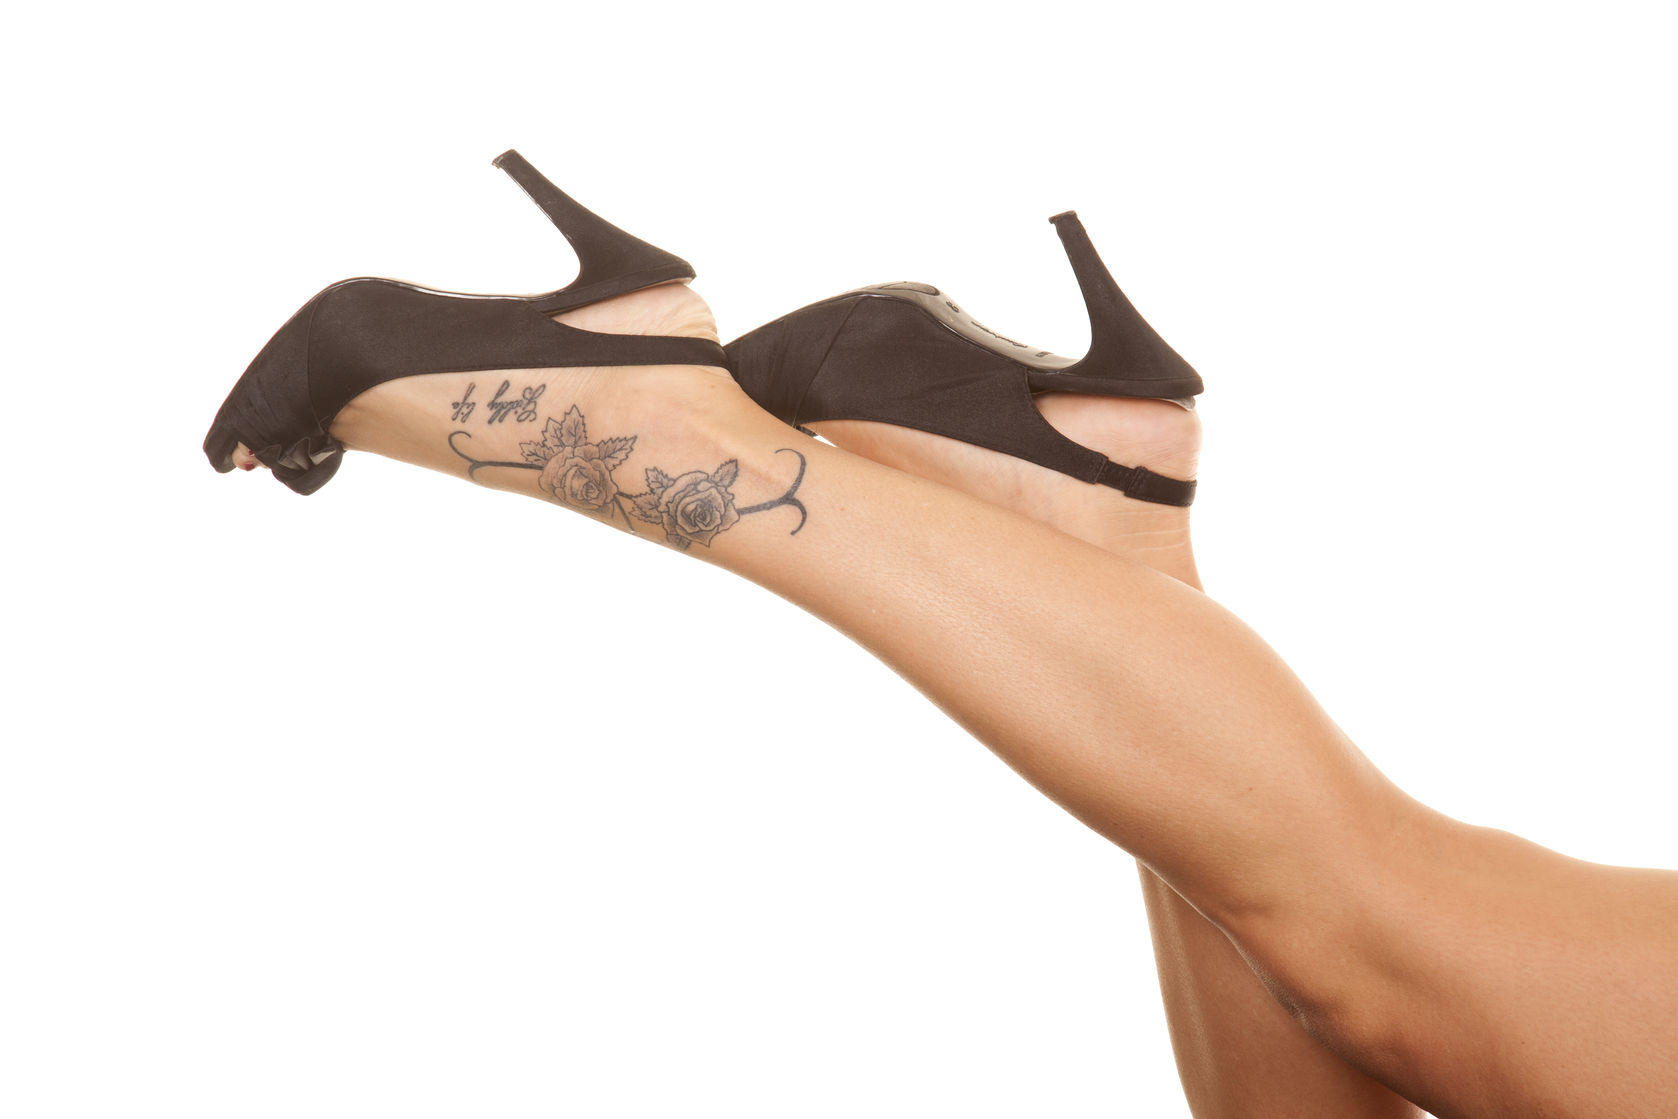 Employee Dress Code – High Heels And Tattoos!